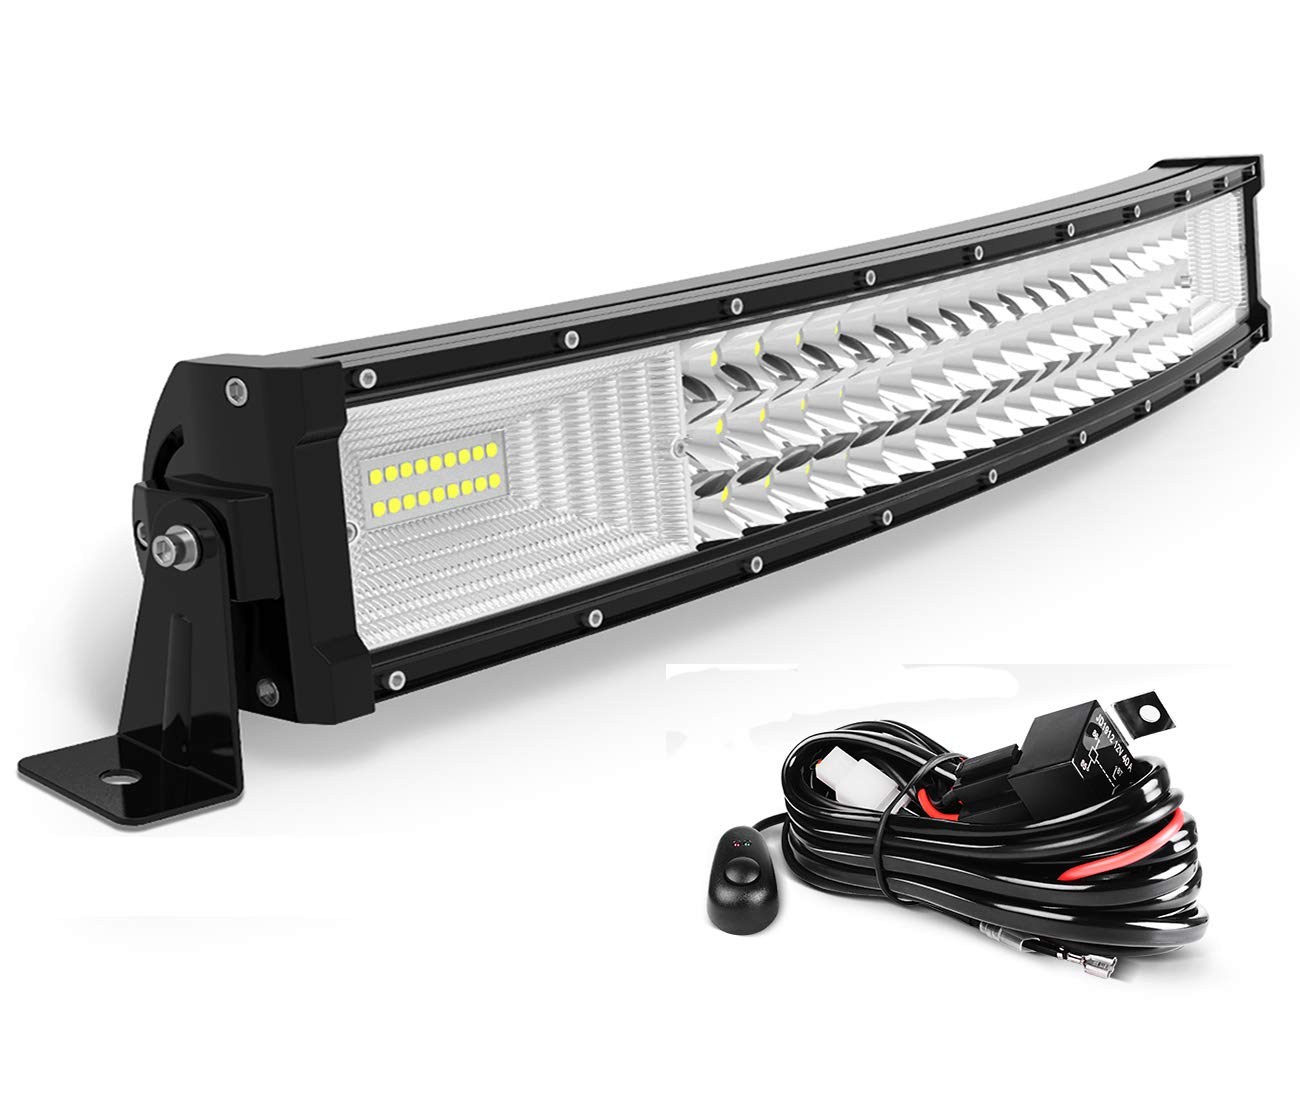 AUTOSAVER88 24'' LED Light Bar Triple Row Curved Flood Spot Combo Beam Led Bar 270W Off Road Driving Lights with Wiring Harness for Jeep Trucks Boats ATV Jeep